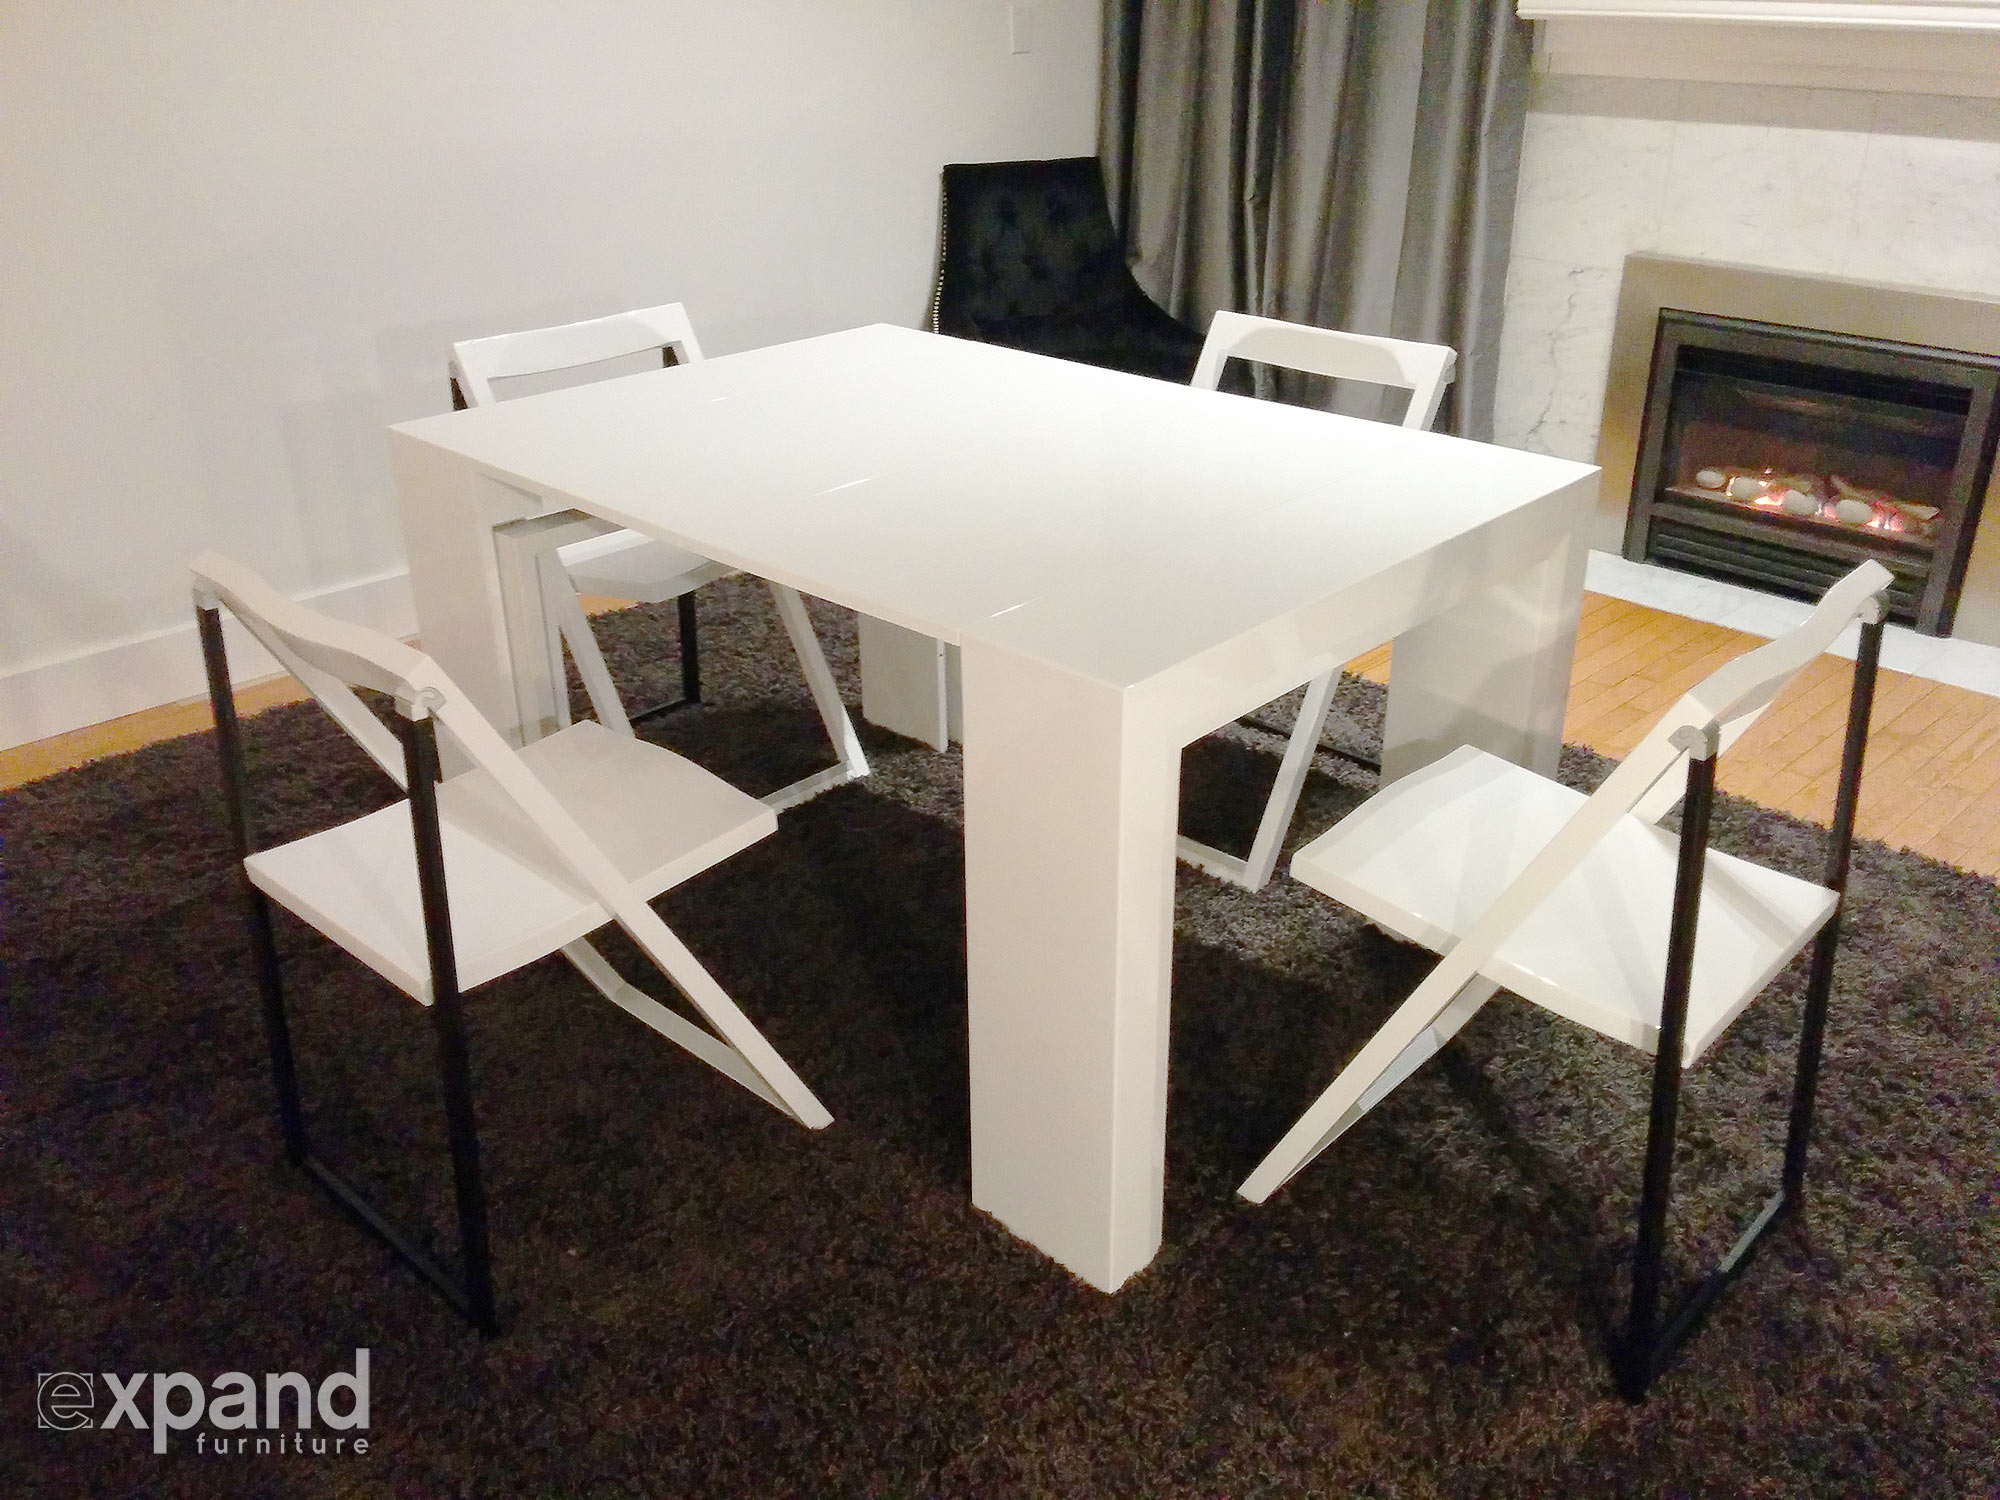 Junior Giant Extending Table Set with Chairs